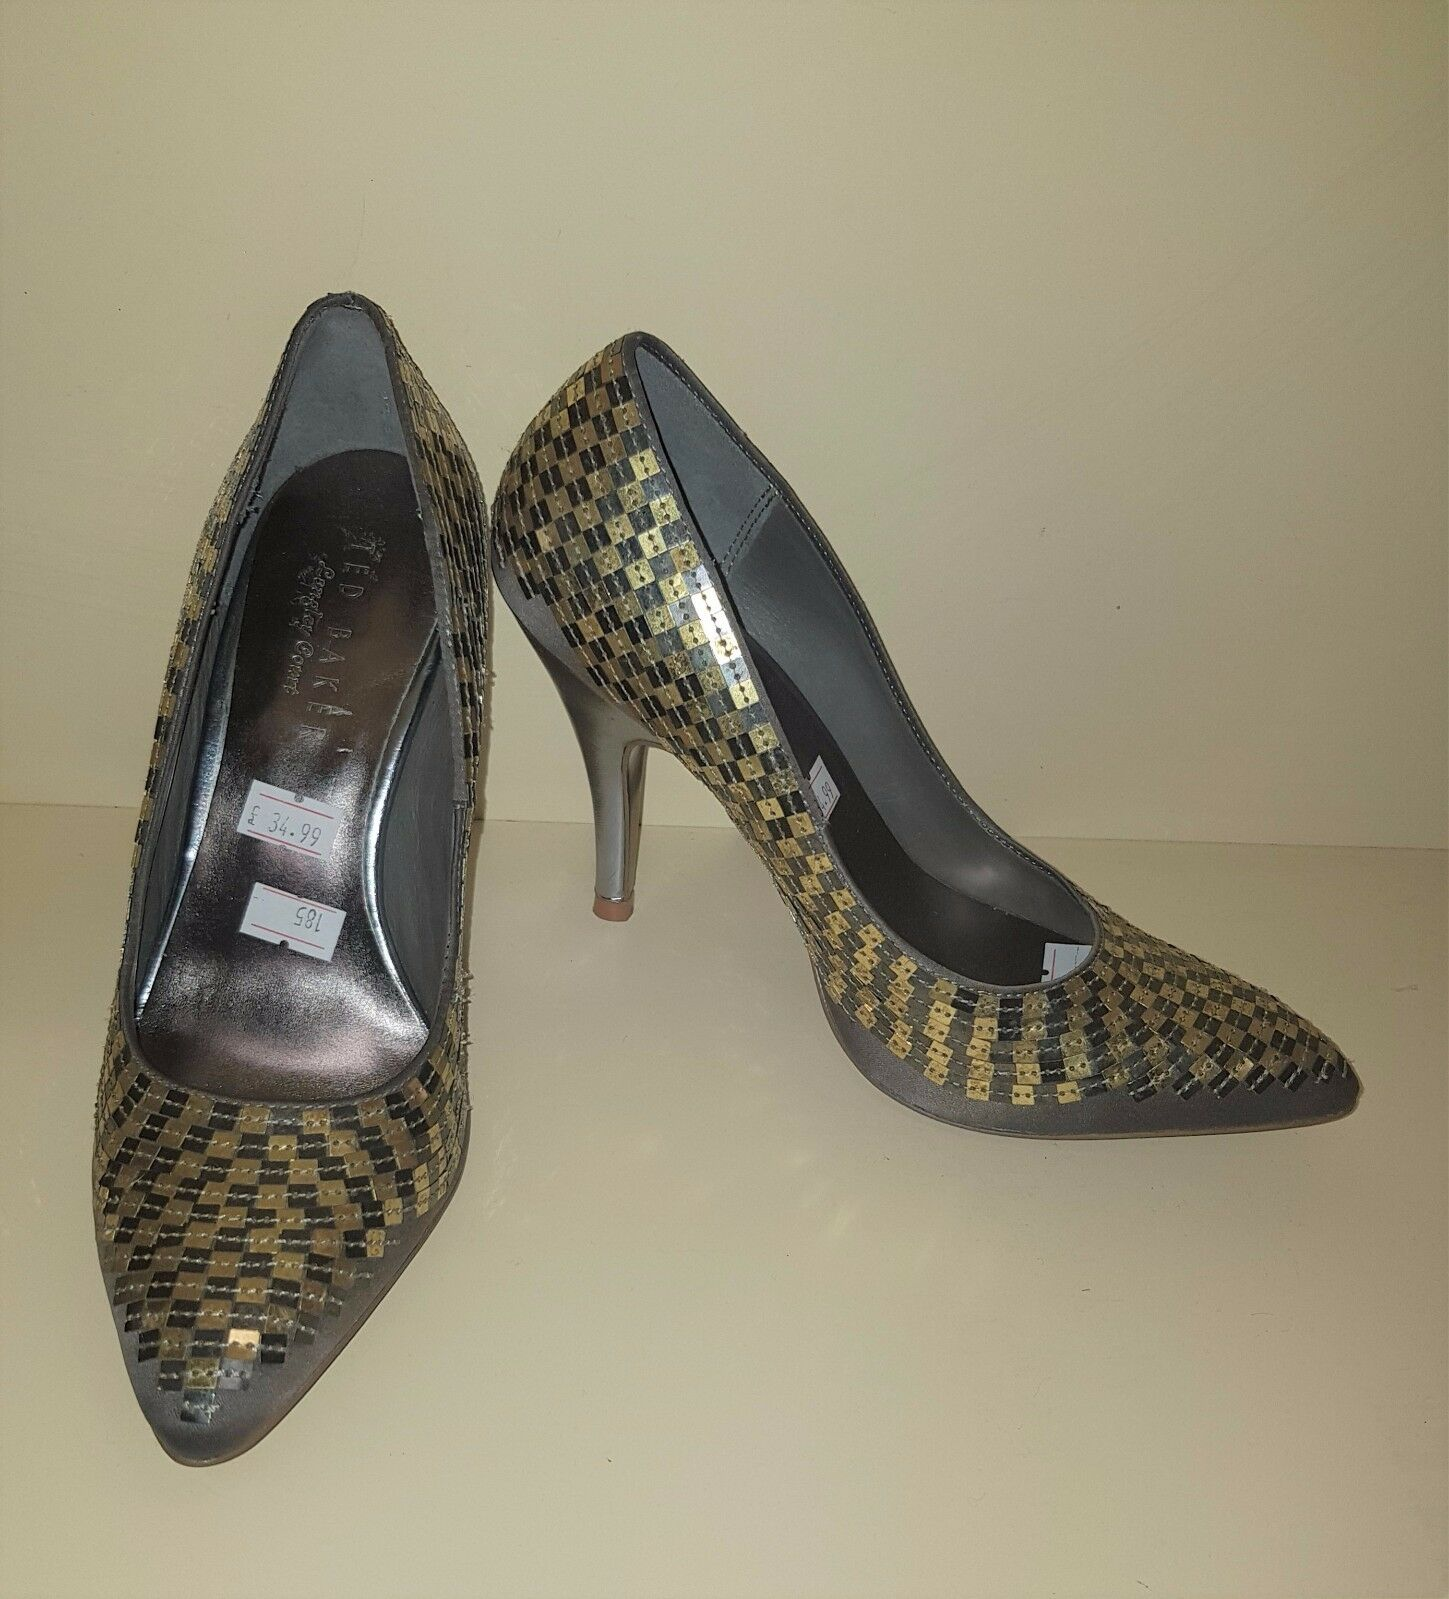 Ted Baker gold Sequin Heels shoes Women Used Pre-Owned Party Ladies Size 3 36